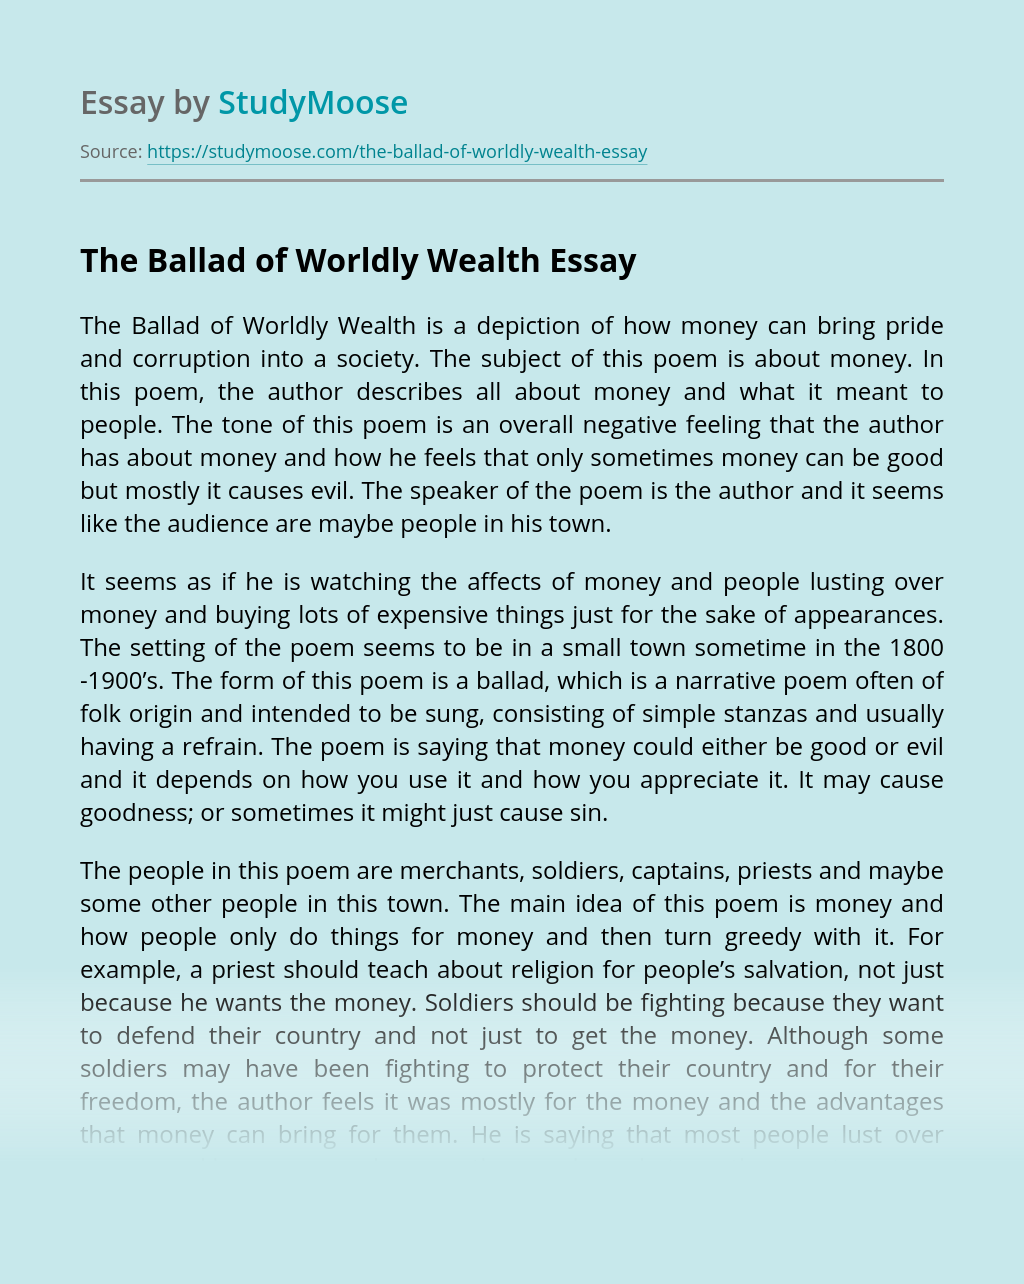 The Ballad of Worldly Wealth